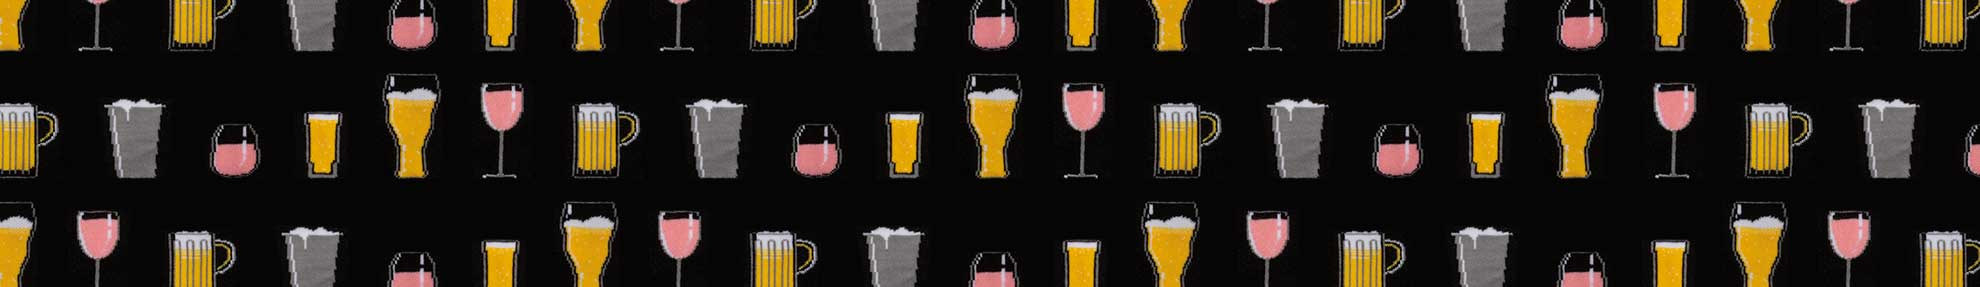 alcohol-header-primitives-by-kathy.jpg